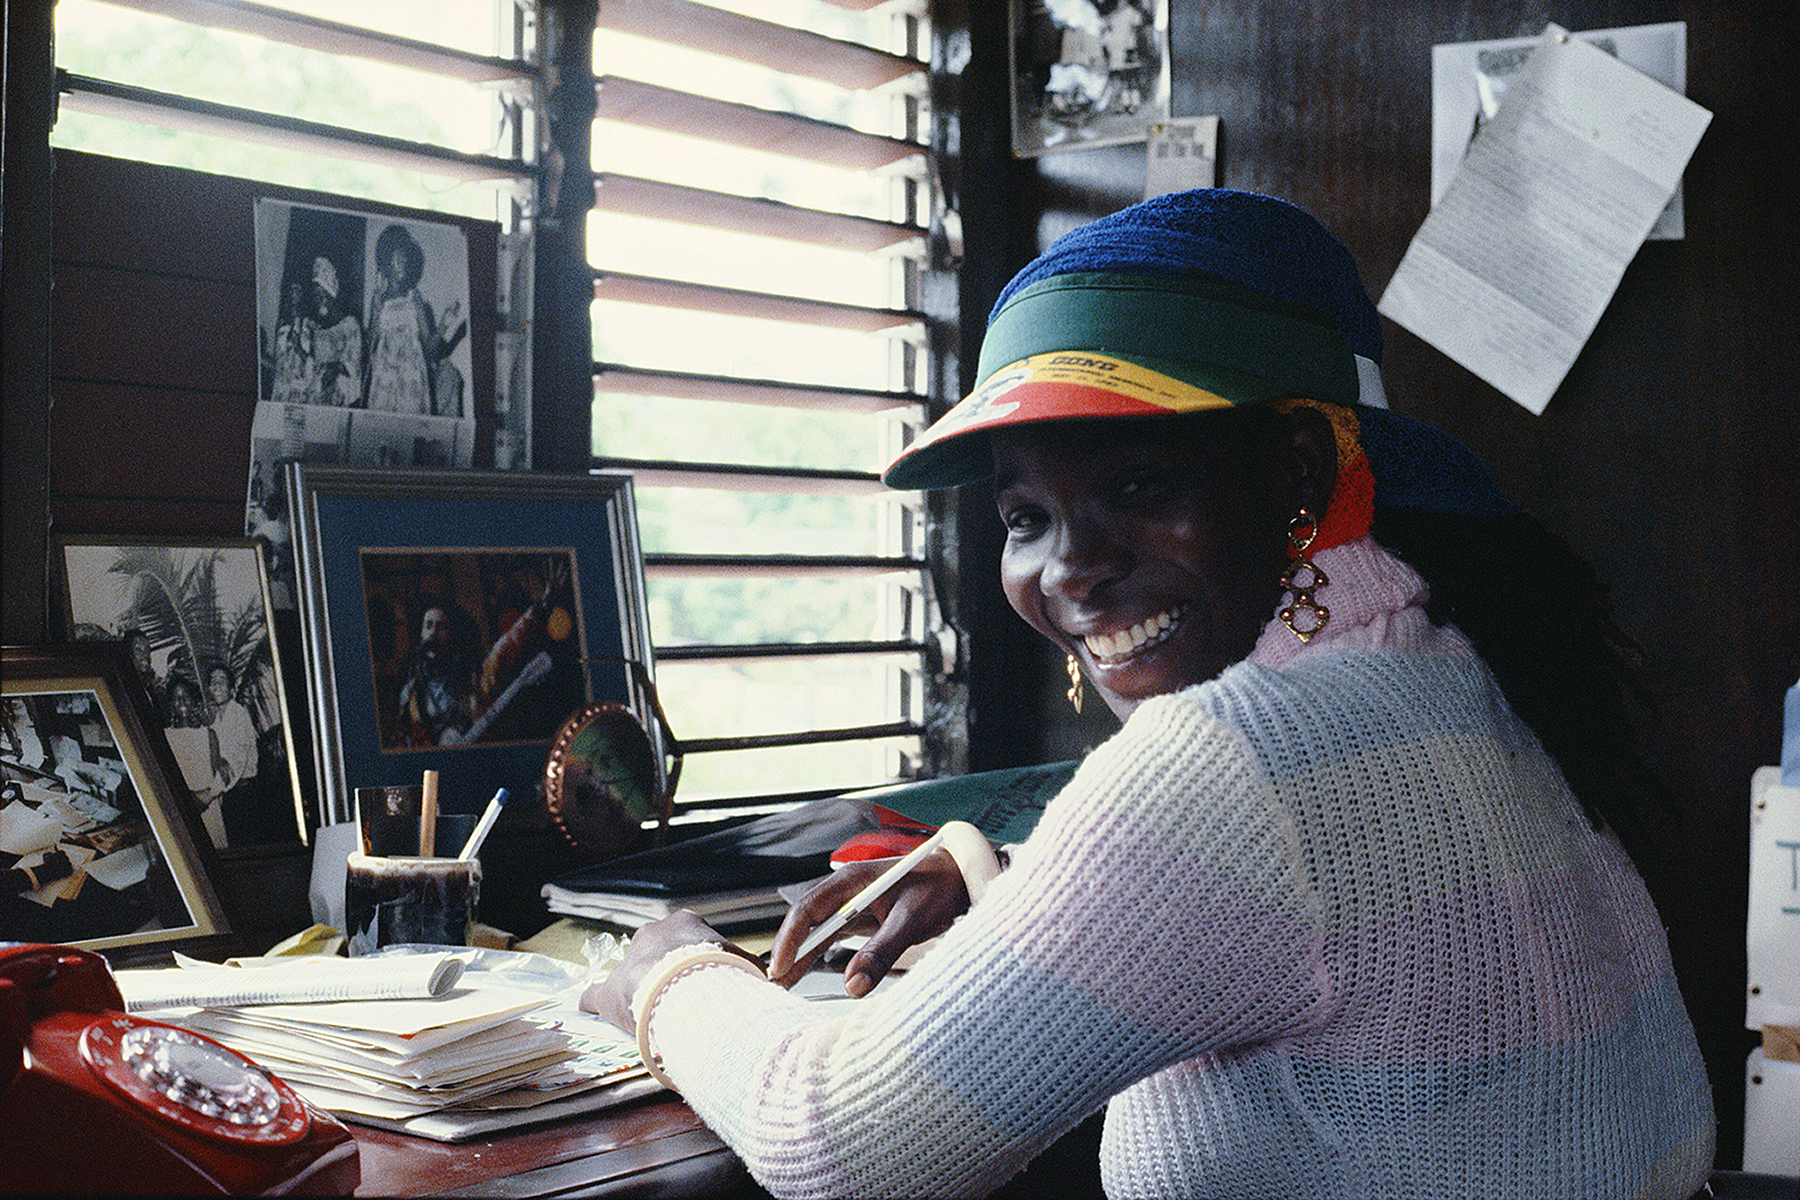 KINGSTON, JAMAICA - CIRCA 1985: Reggae singer and widow of Bob Marley, Rita Marley poses for a portrait circa 1985 in Kingston, Jamaica. (Photo by Lee Jaffe/Getty Images)